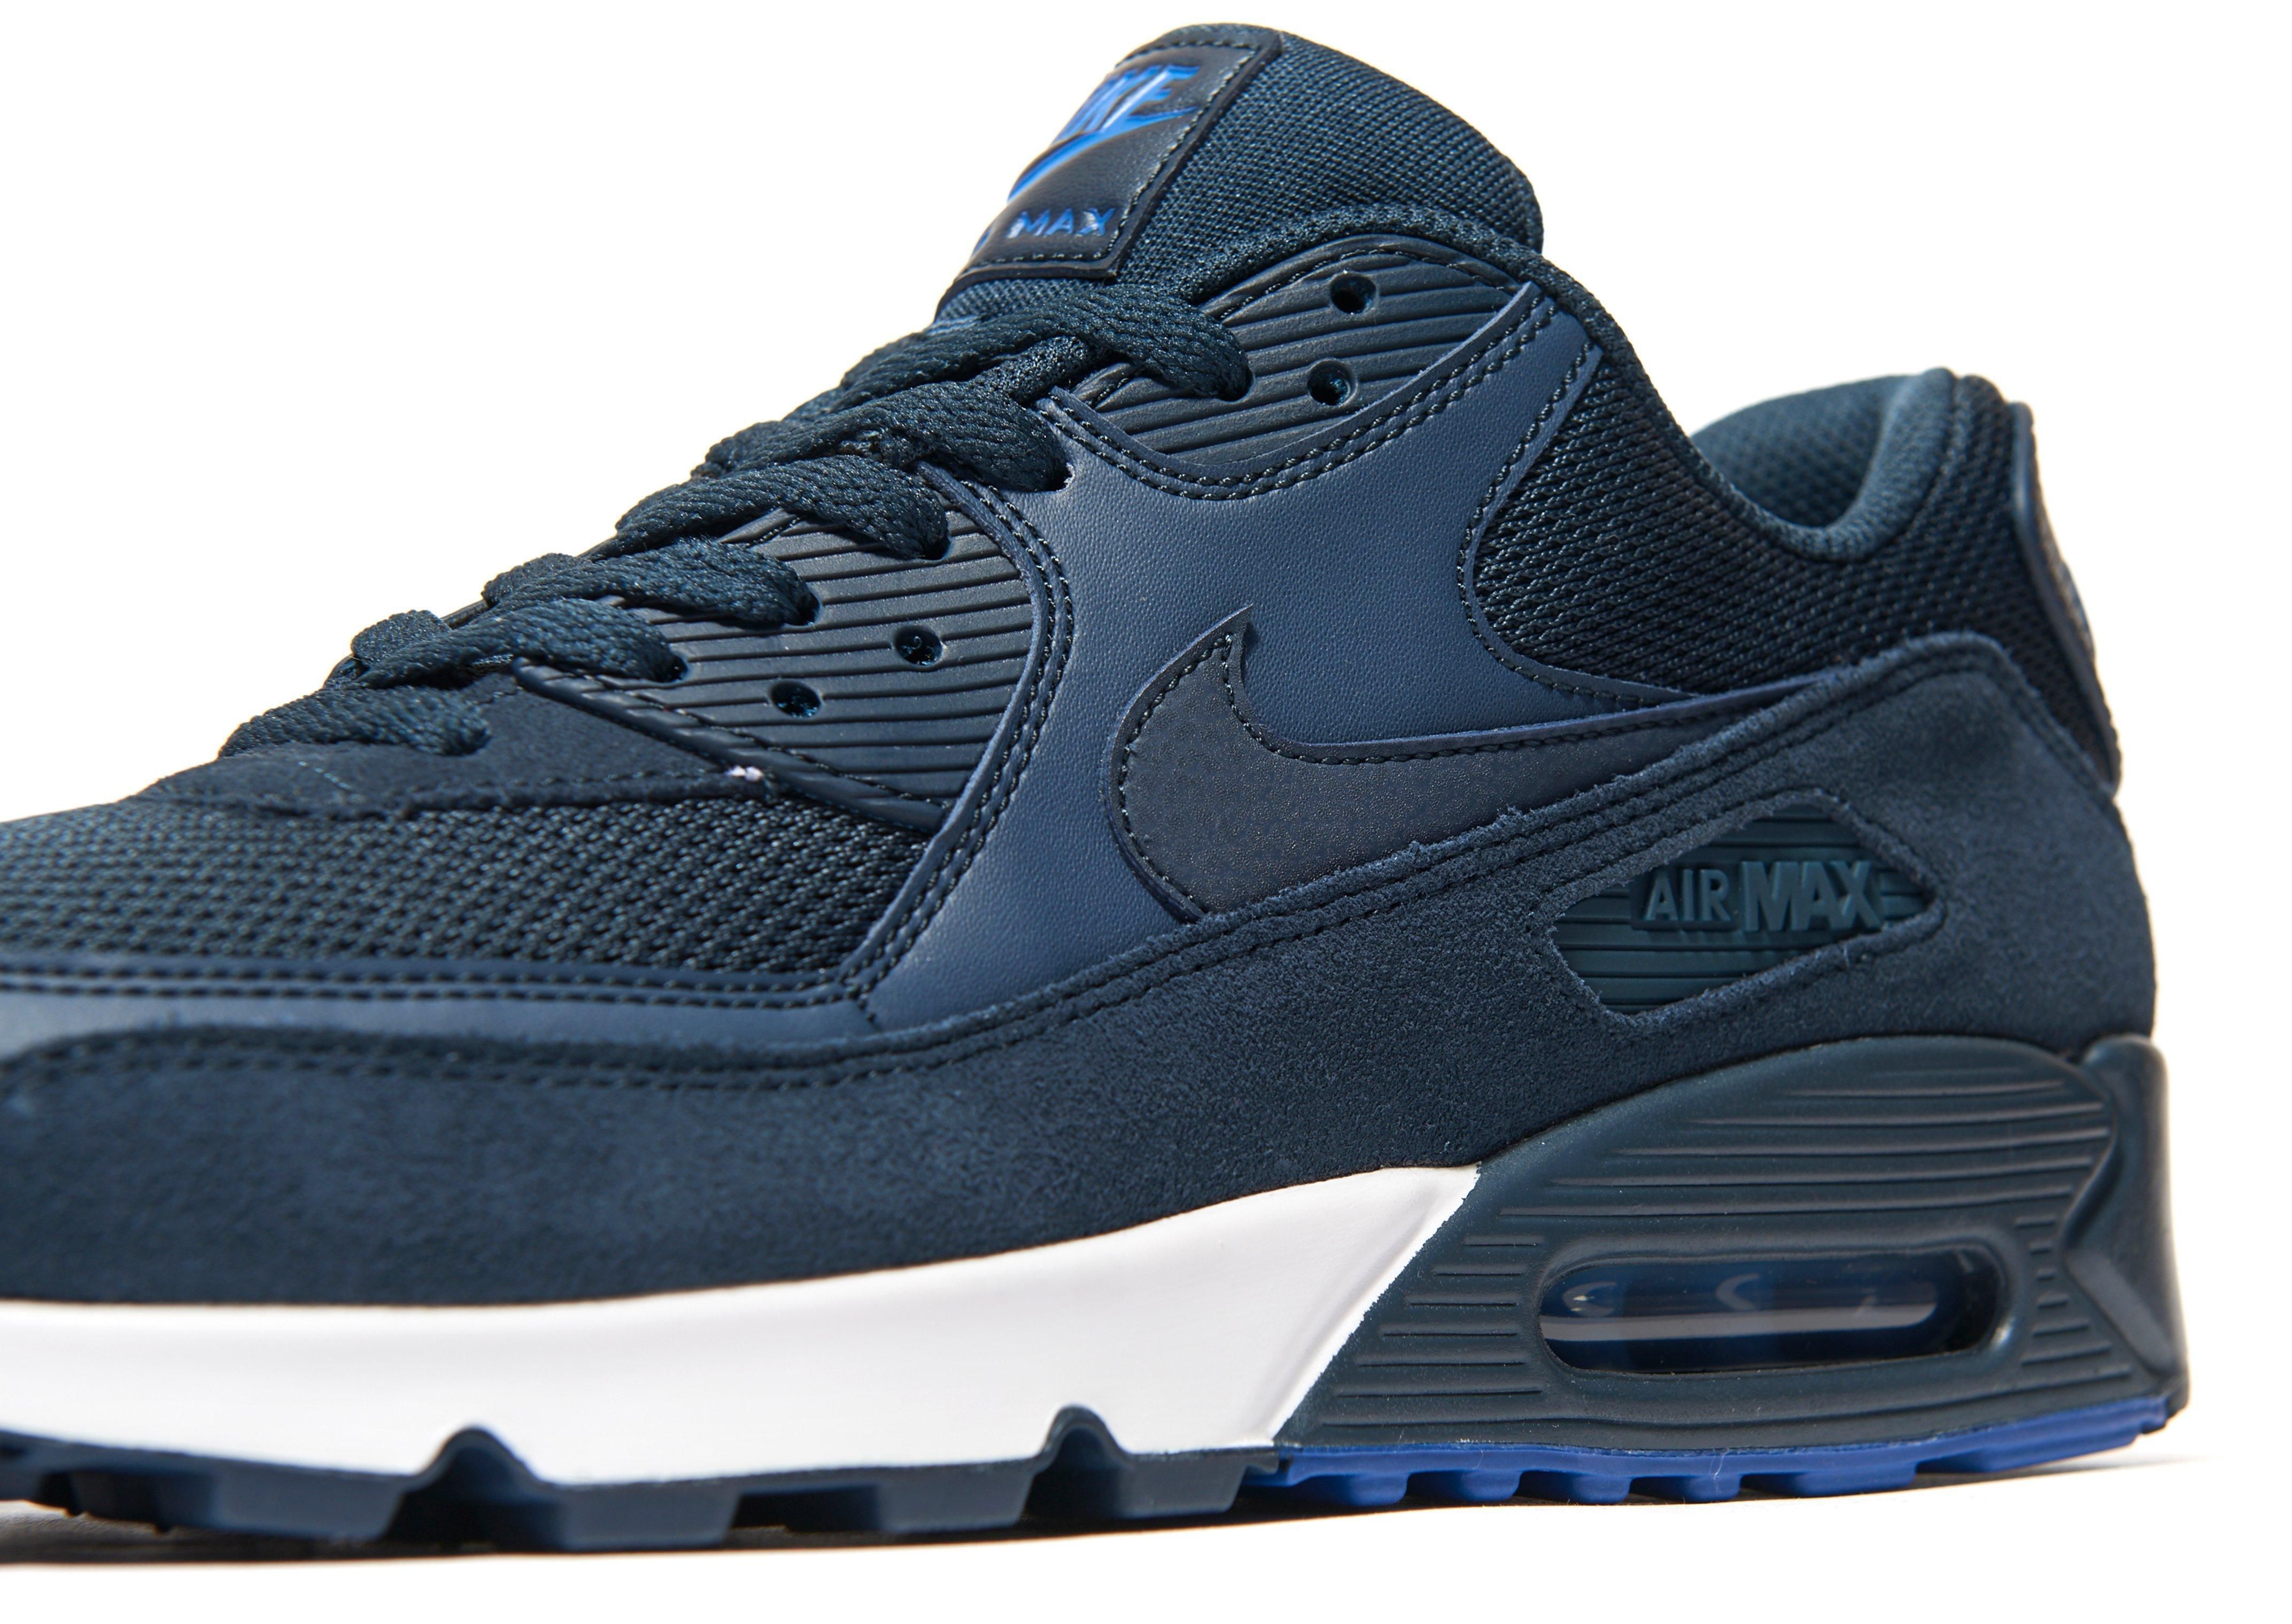 Nike Leather Air Max 90 Army Trainers in NavyBlue (Blue